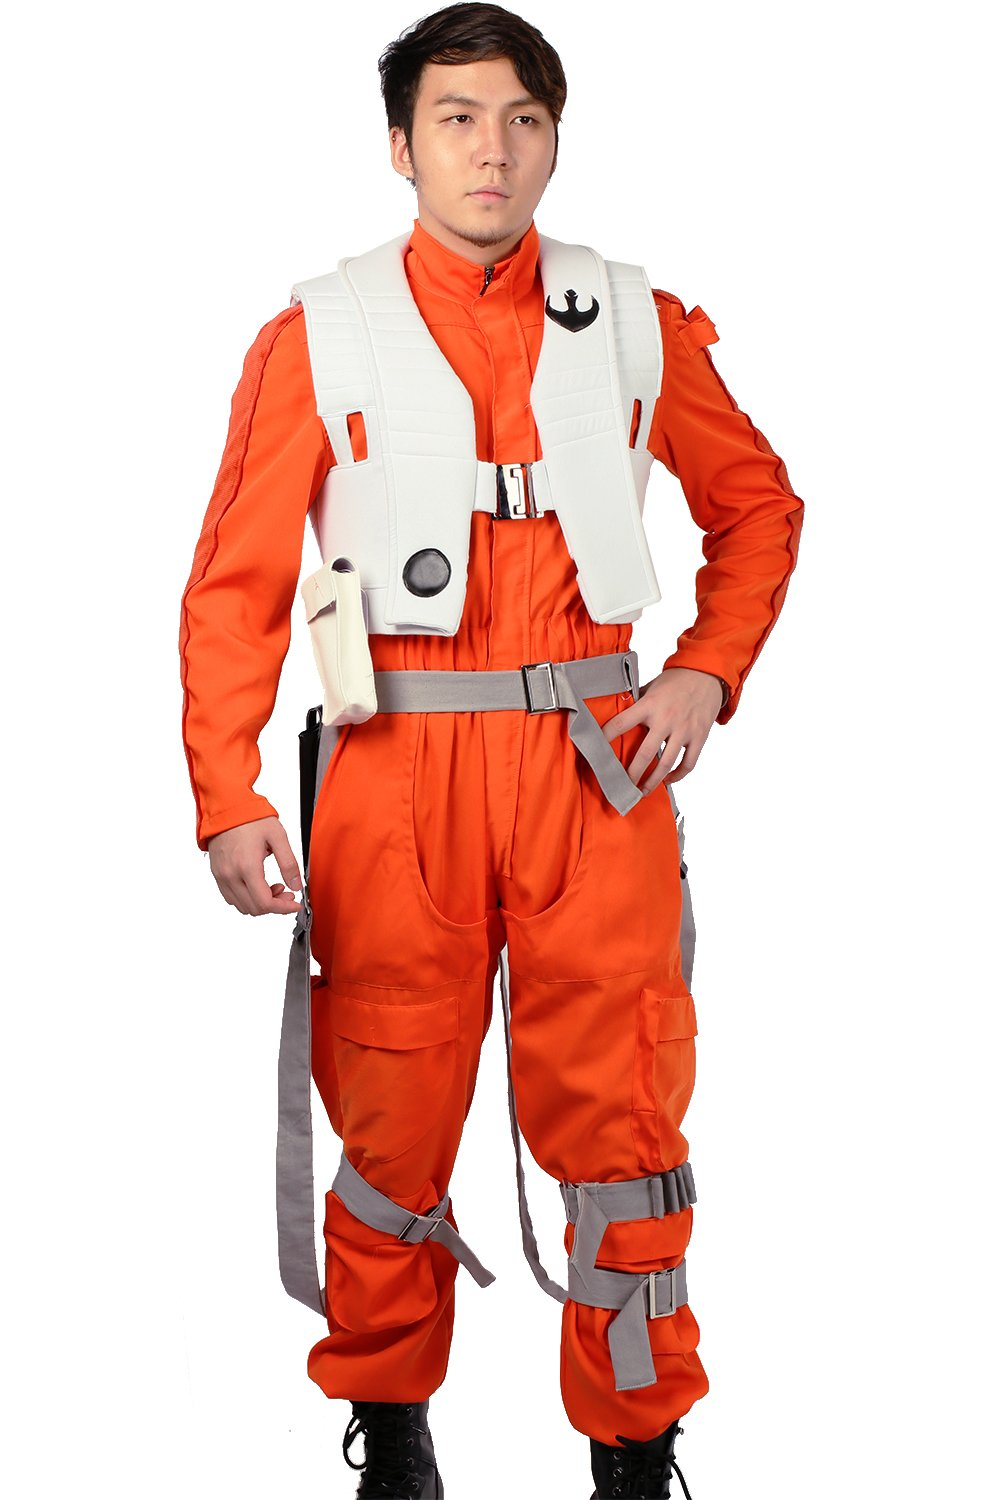 XCOSER Poe Dameron Costume Deluxe Orange Jumpsuit Suit Halloween Cosplay Outfit XL by xcoser (Image #1)